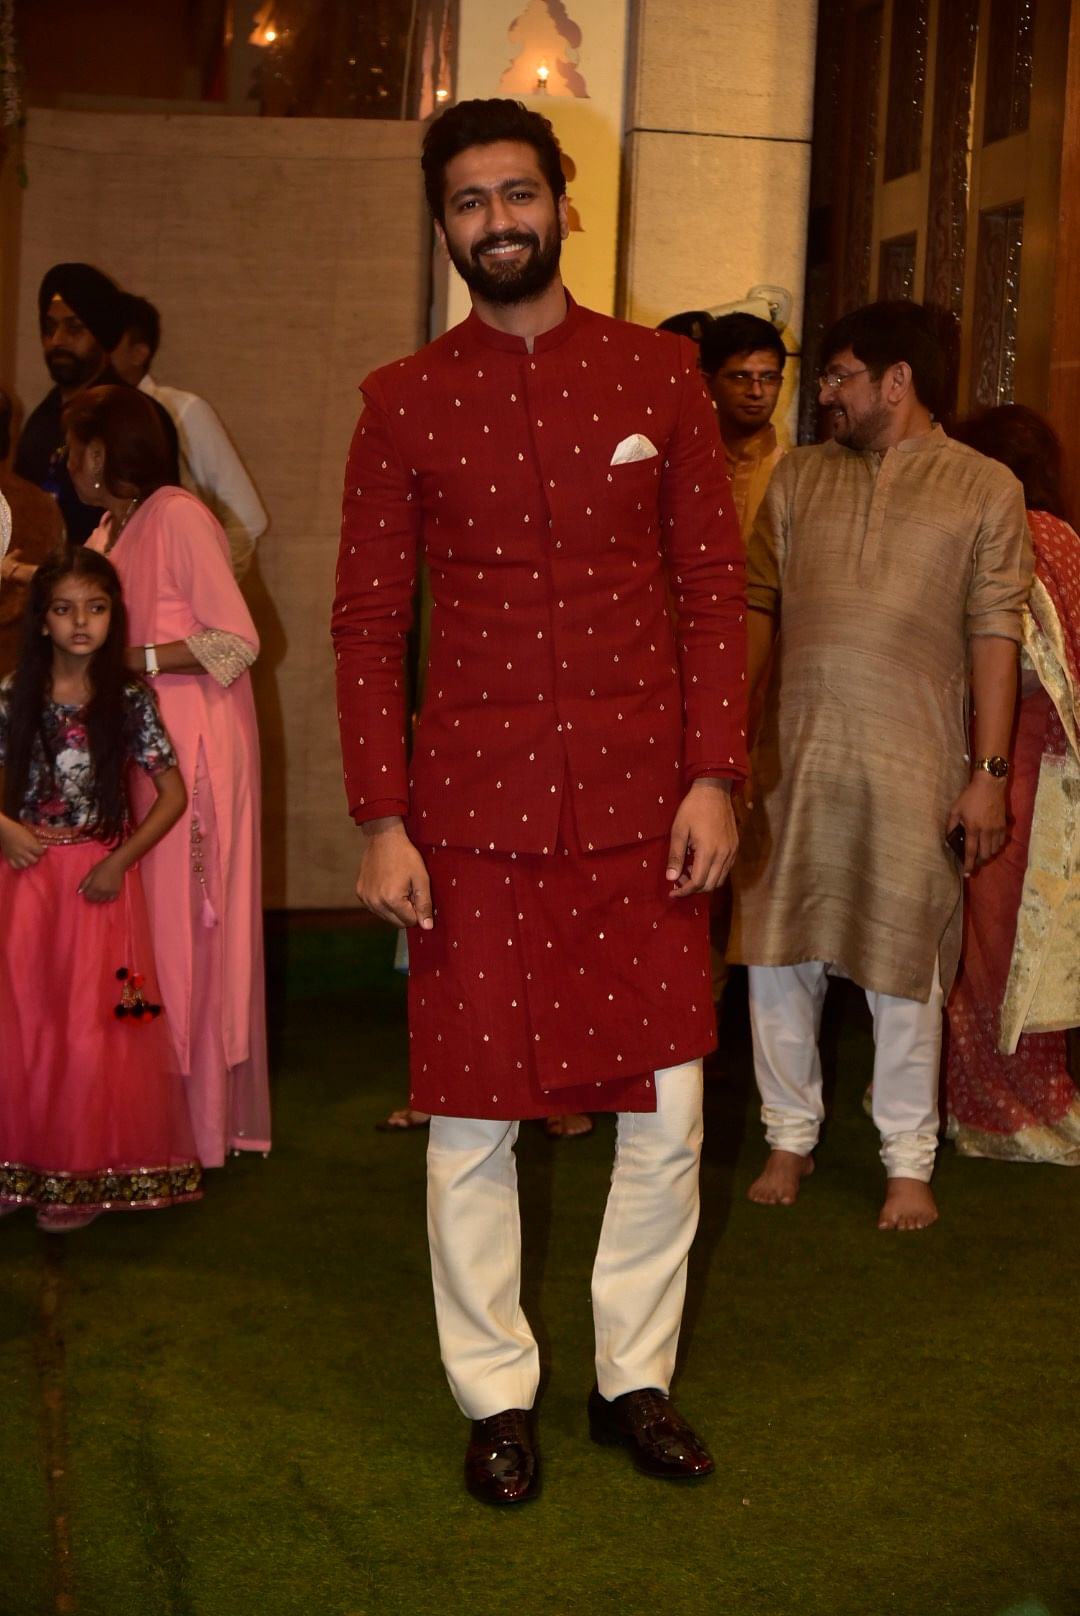 Vicky Kaushal wore a traditional red Kurta to pay his respect at the Ambanis'